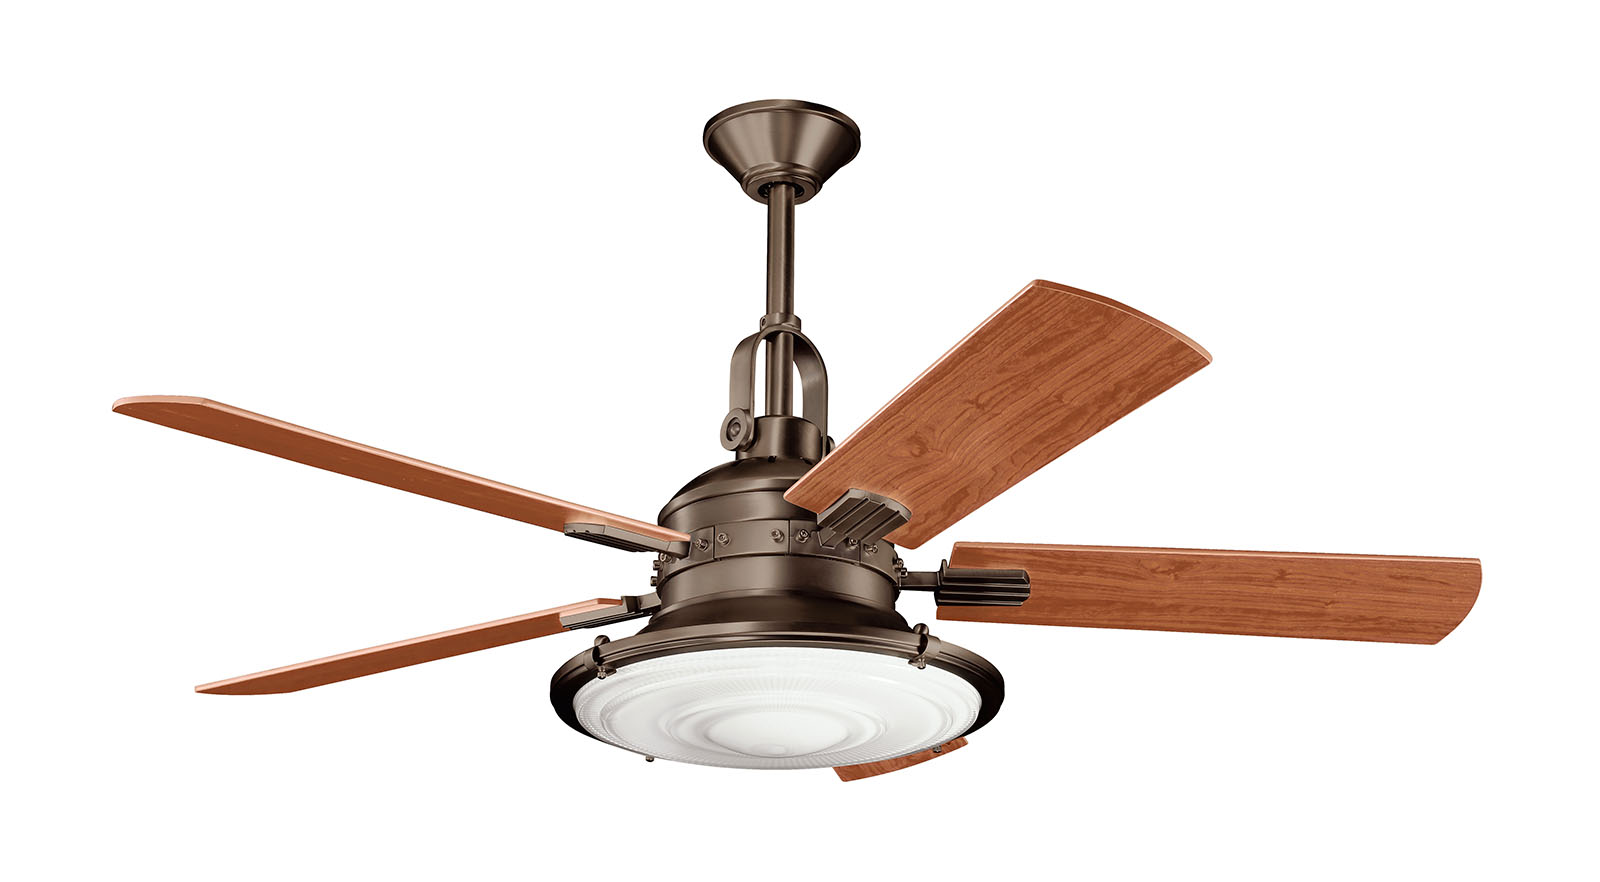 Ceiling Fans With Good Lighting Kittery Point 52